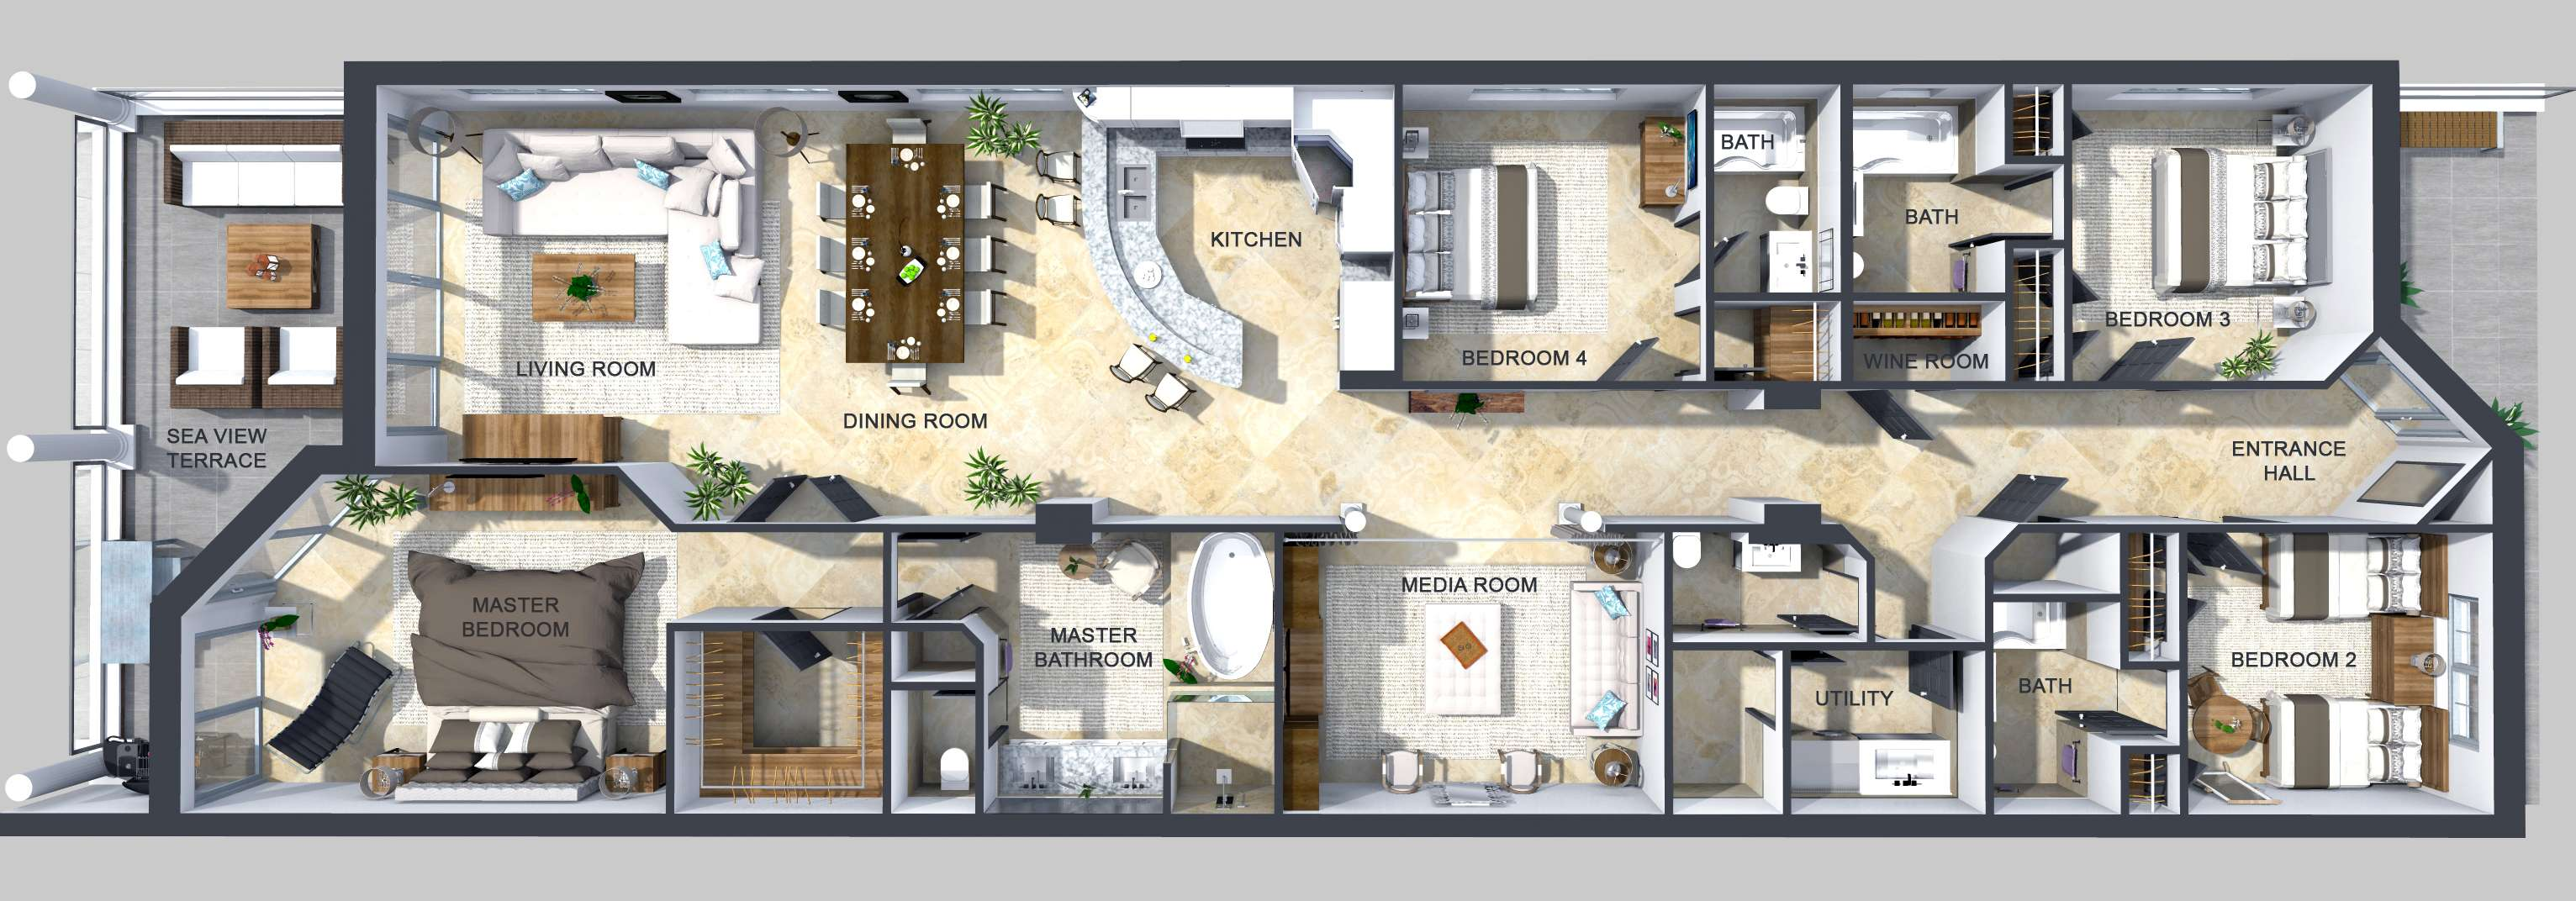 Sea Breeze 8 floor plan